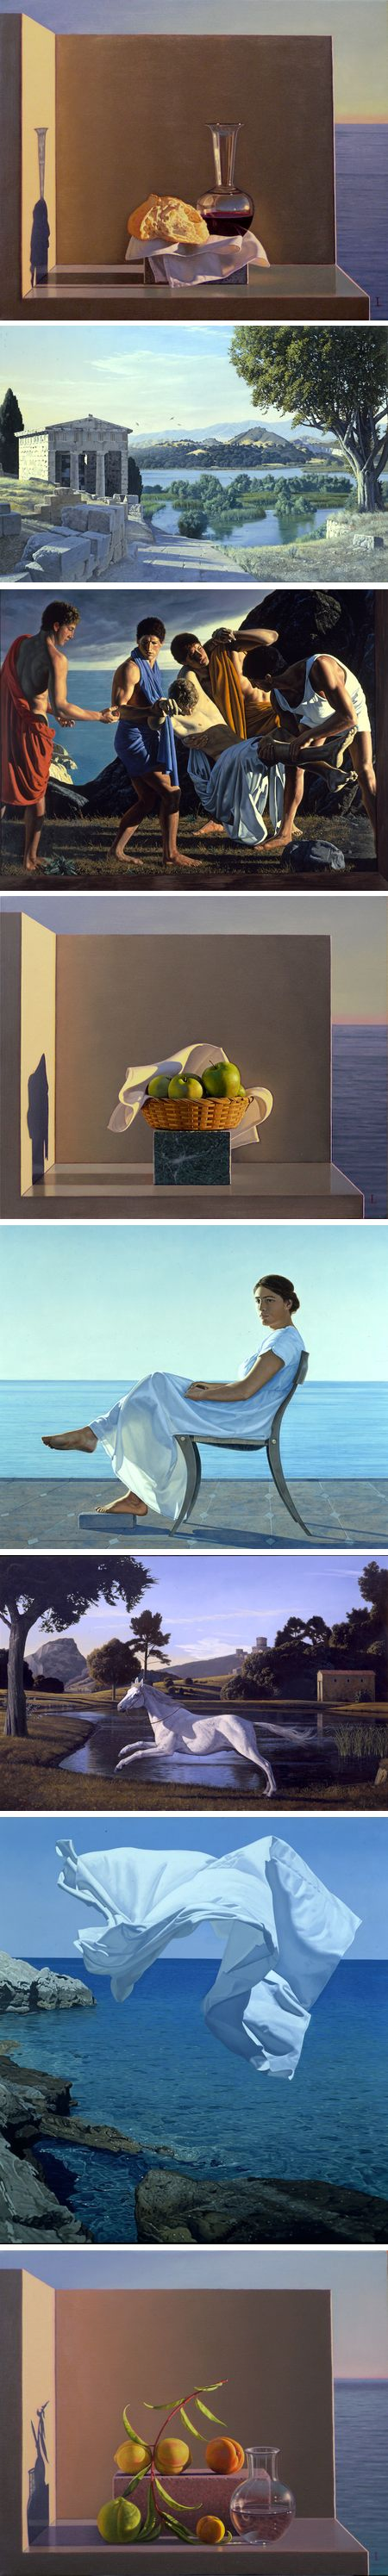 David Ligare